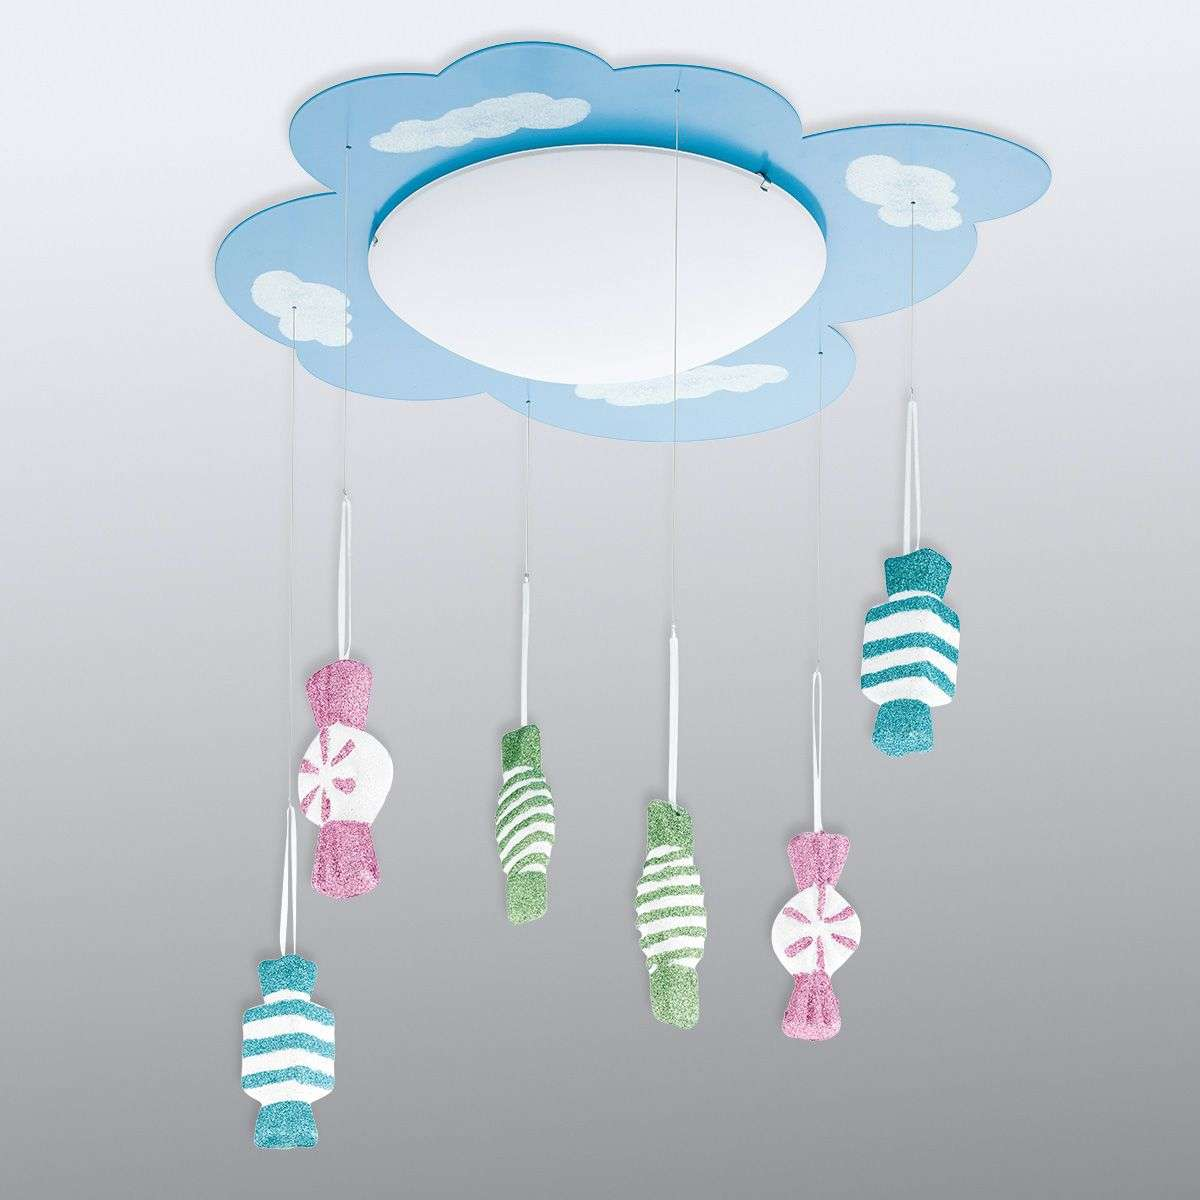 Junior 3 a ceiling light with sweets-3031779-31